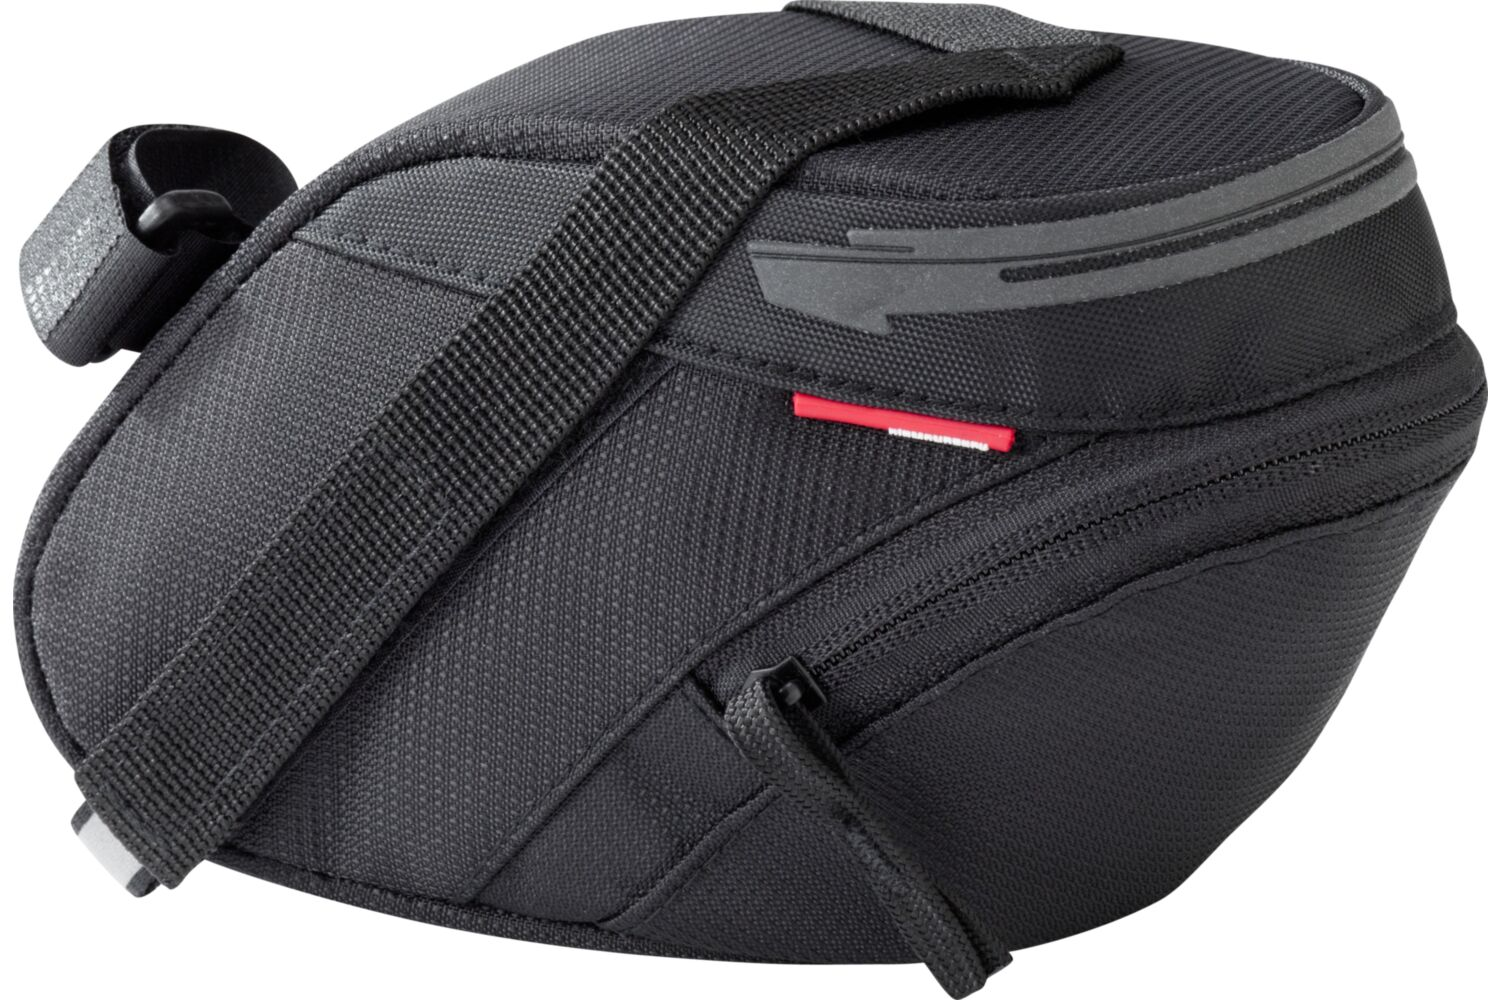 DBS 100ci Bike Bag / Large